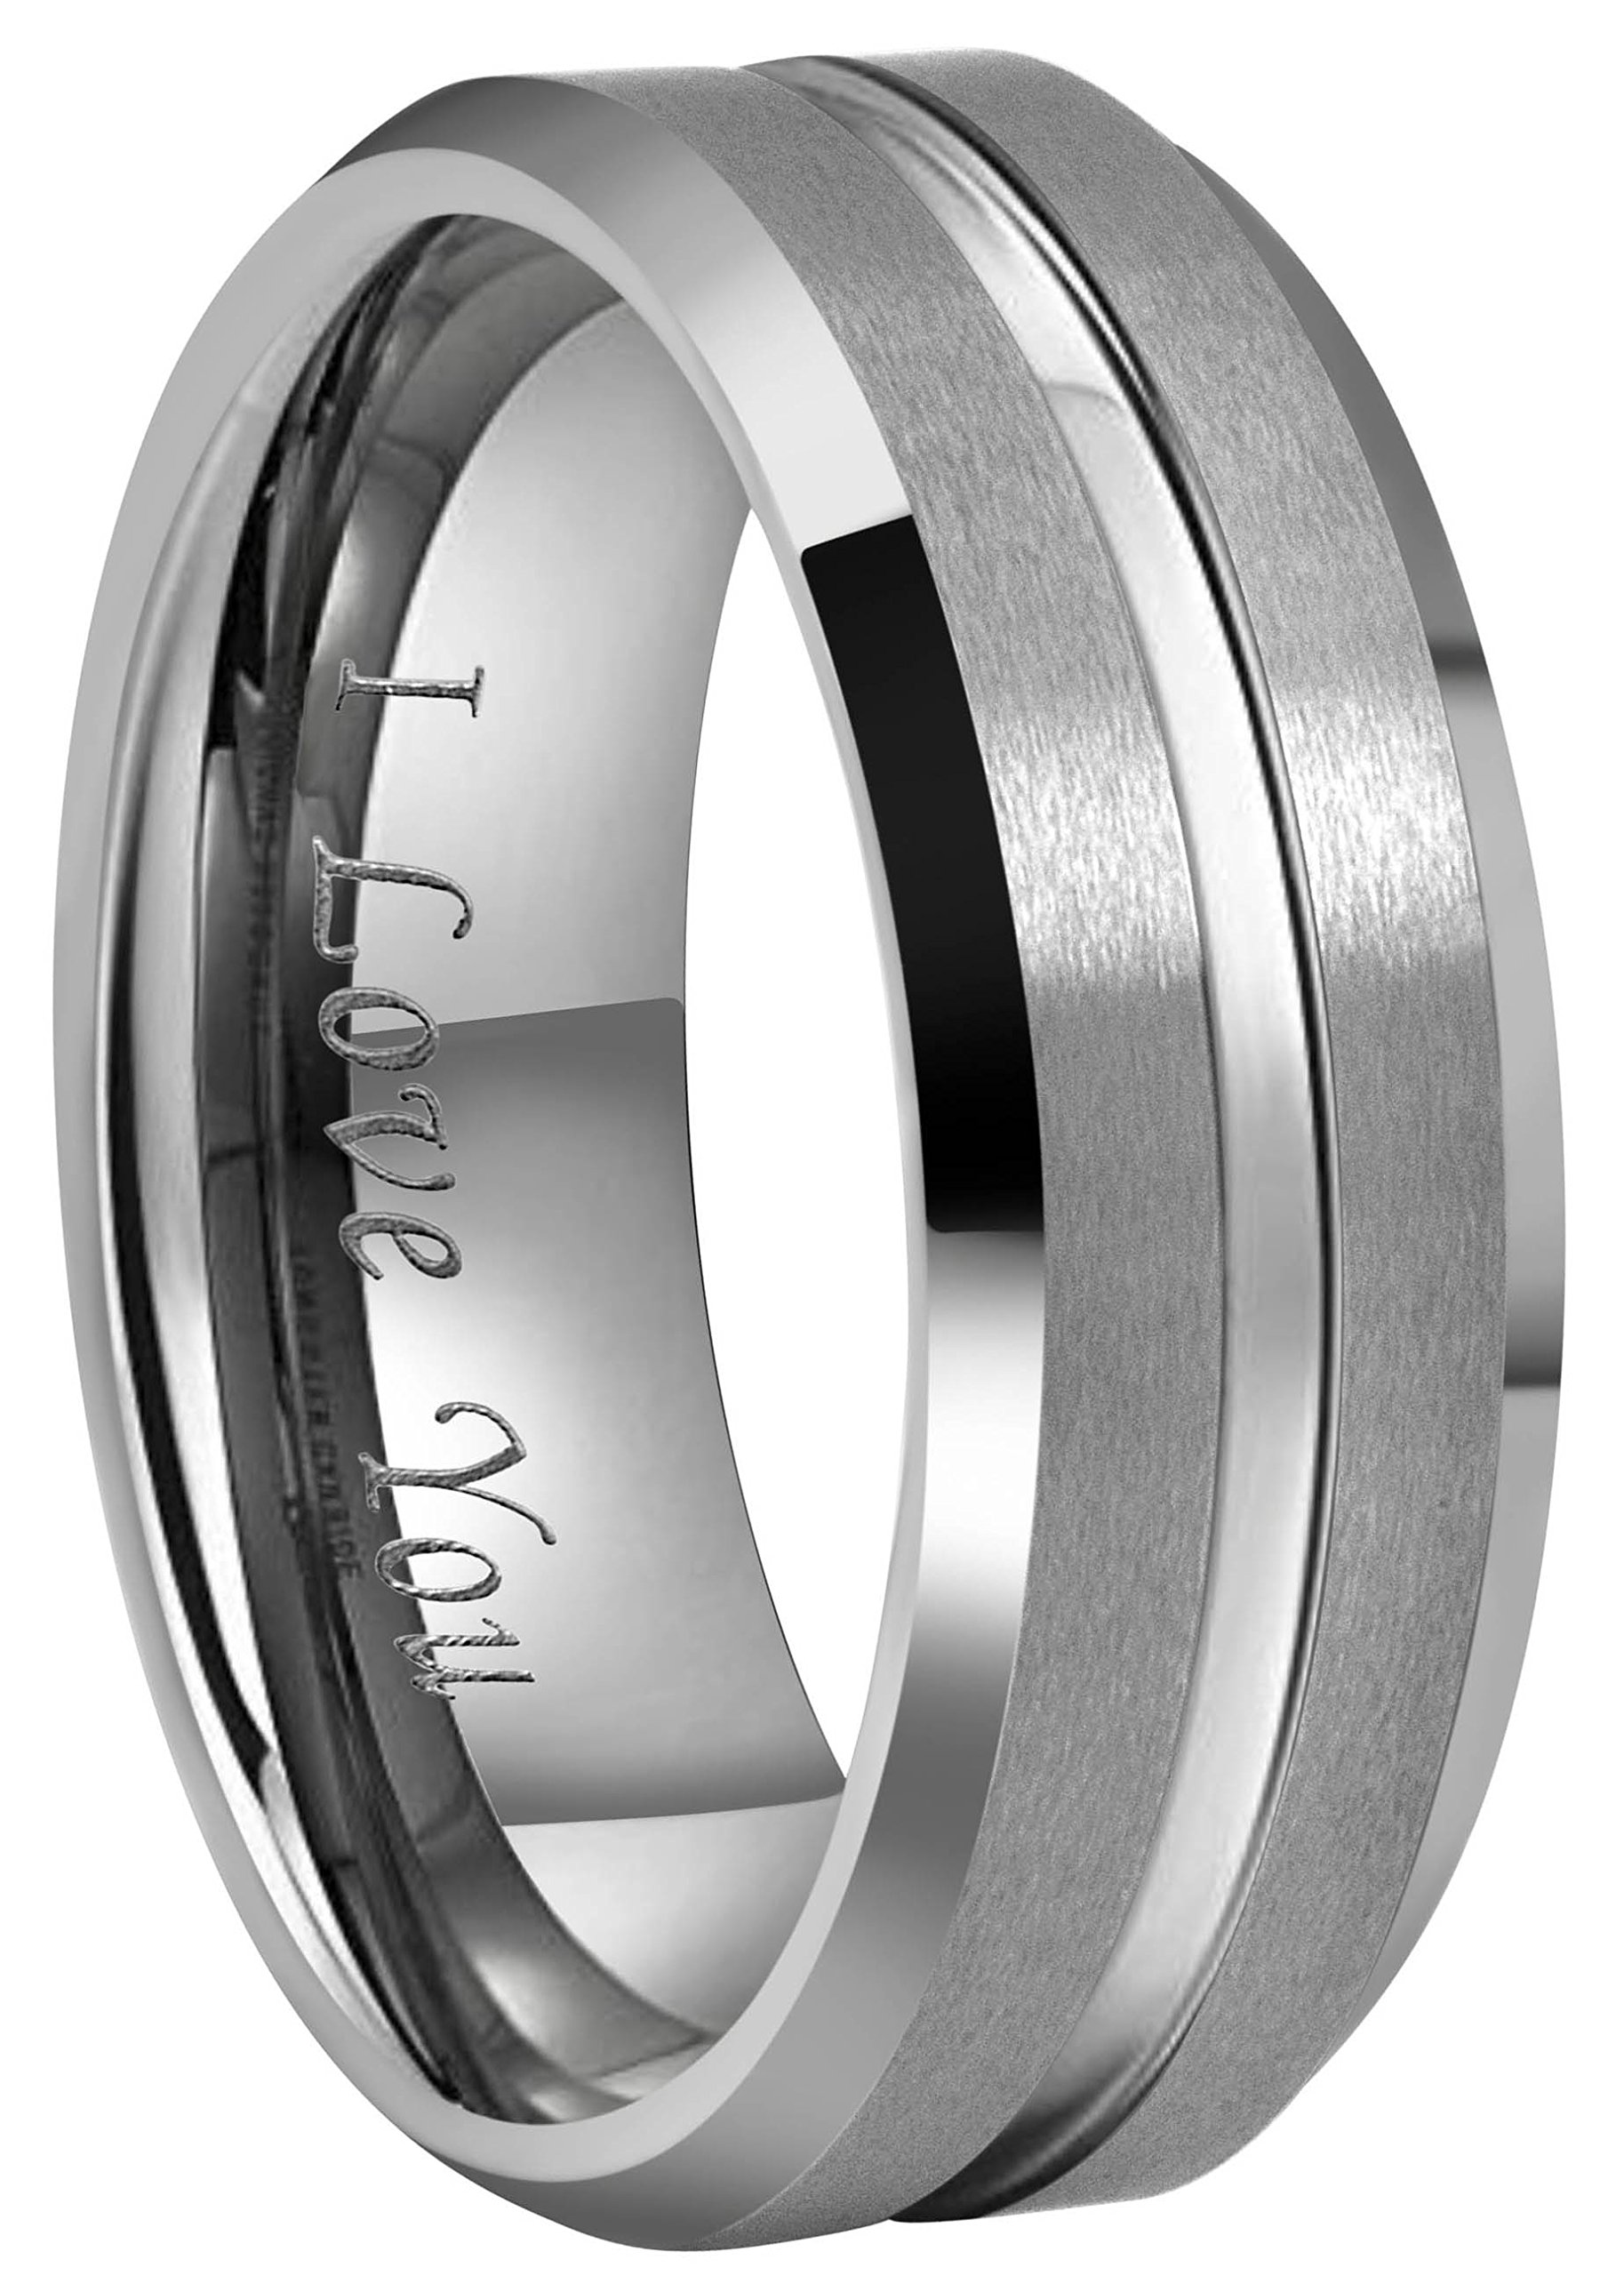 Crownal 10mm 8mm 6mm Tungsten Wedding Band Ring Engraved ''I Love You'' Men Women Polished Groove Matte Finish Beveled Edges (8mm,7)